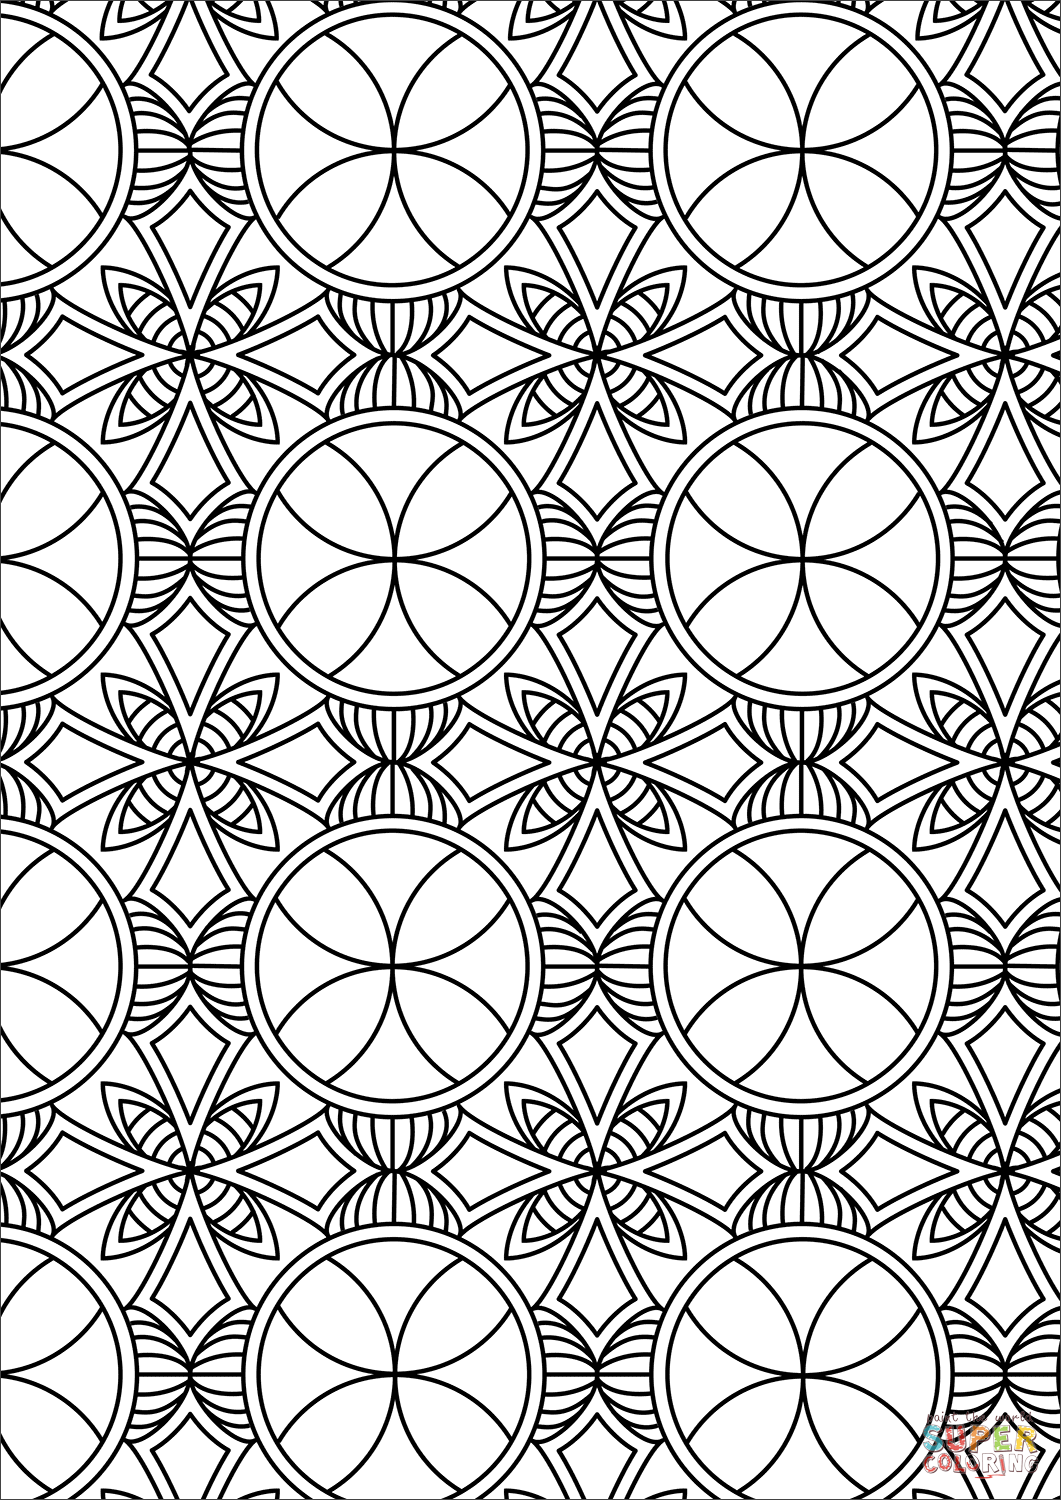 printable patterns to colour top 20 free printable pattern coloring pages online patterns colour printable to